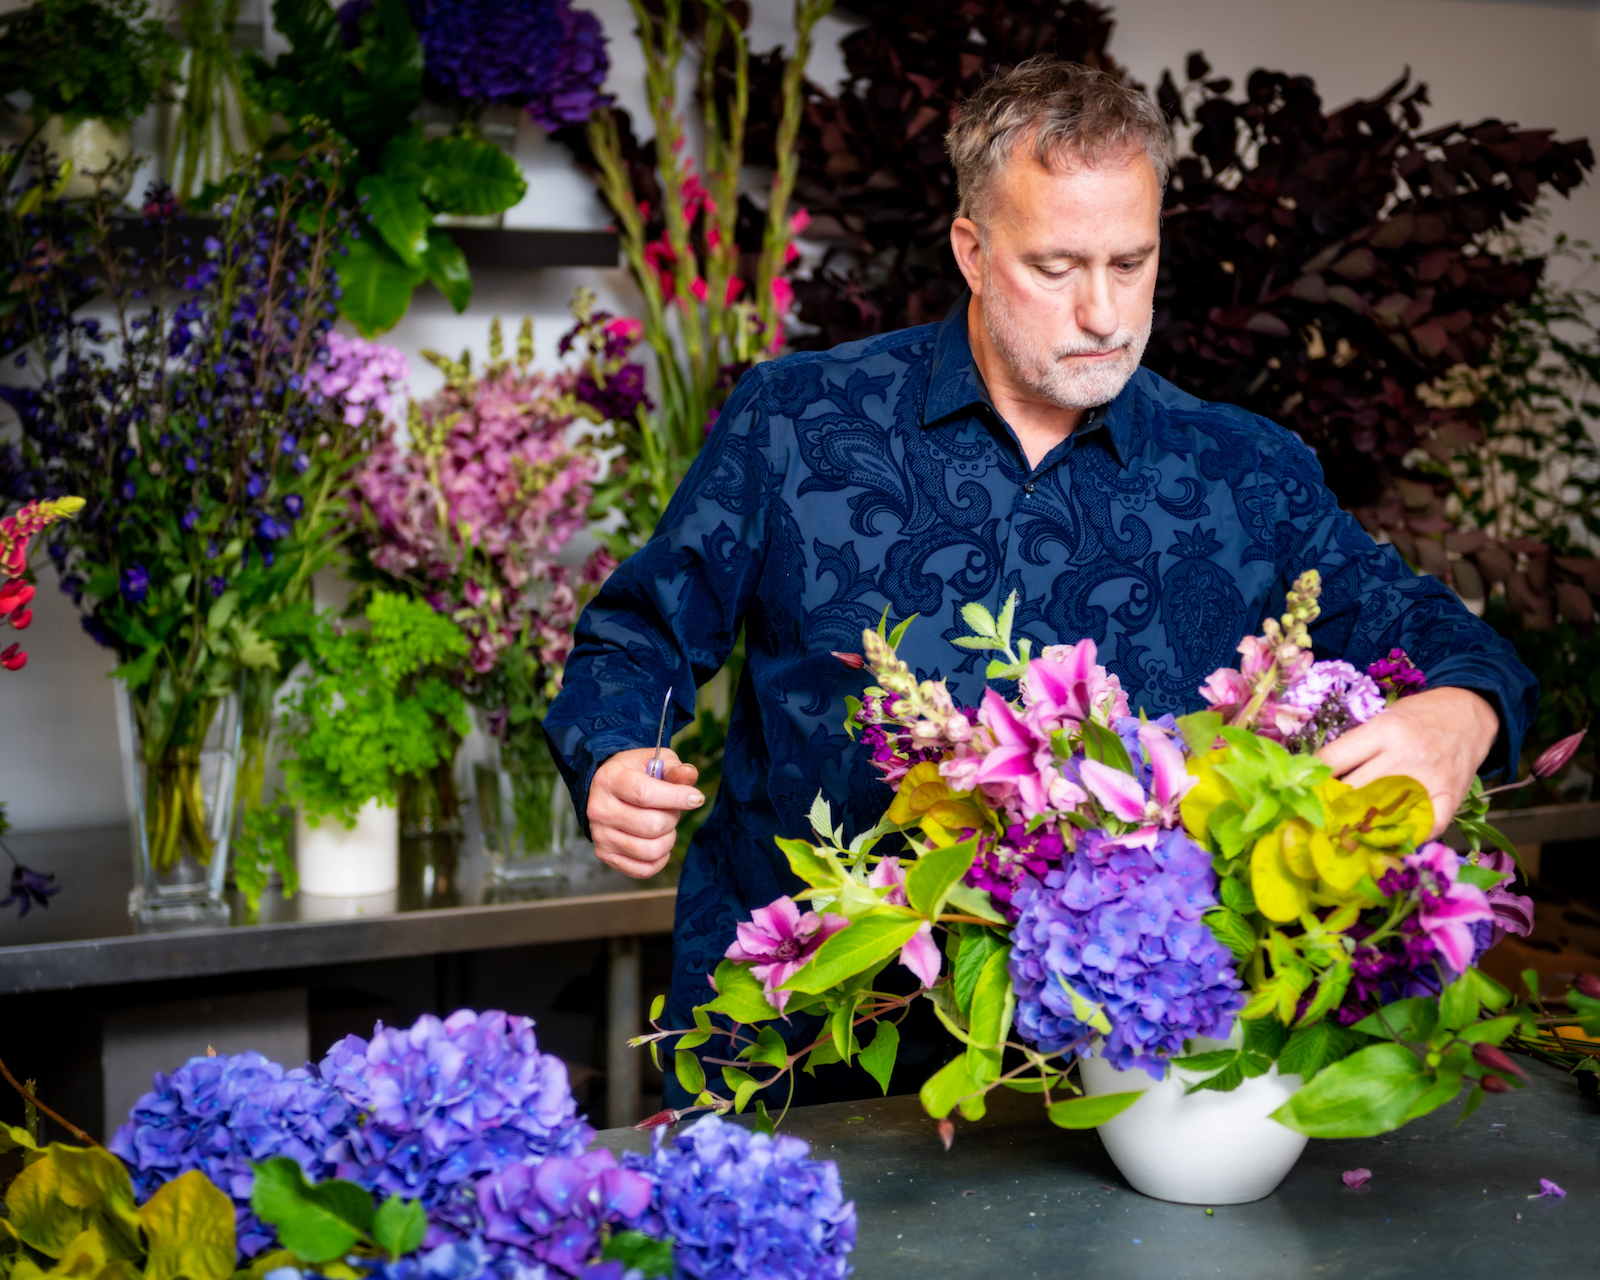 Meet the team at Botanica Floral Design